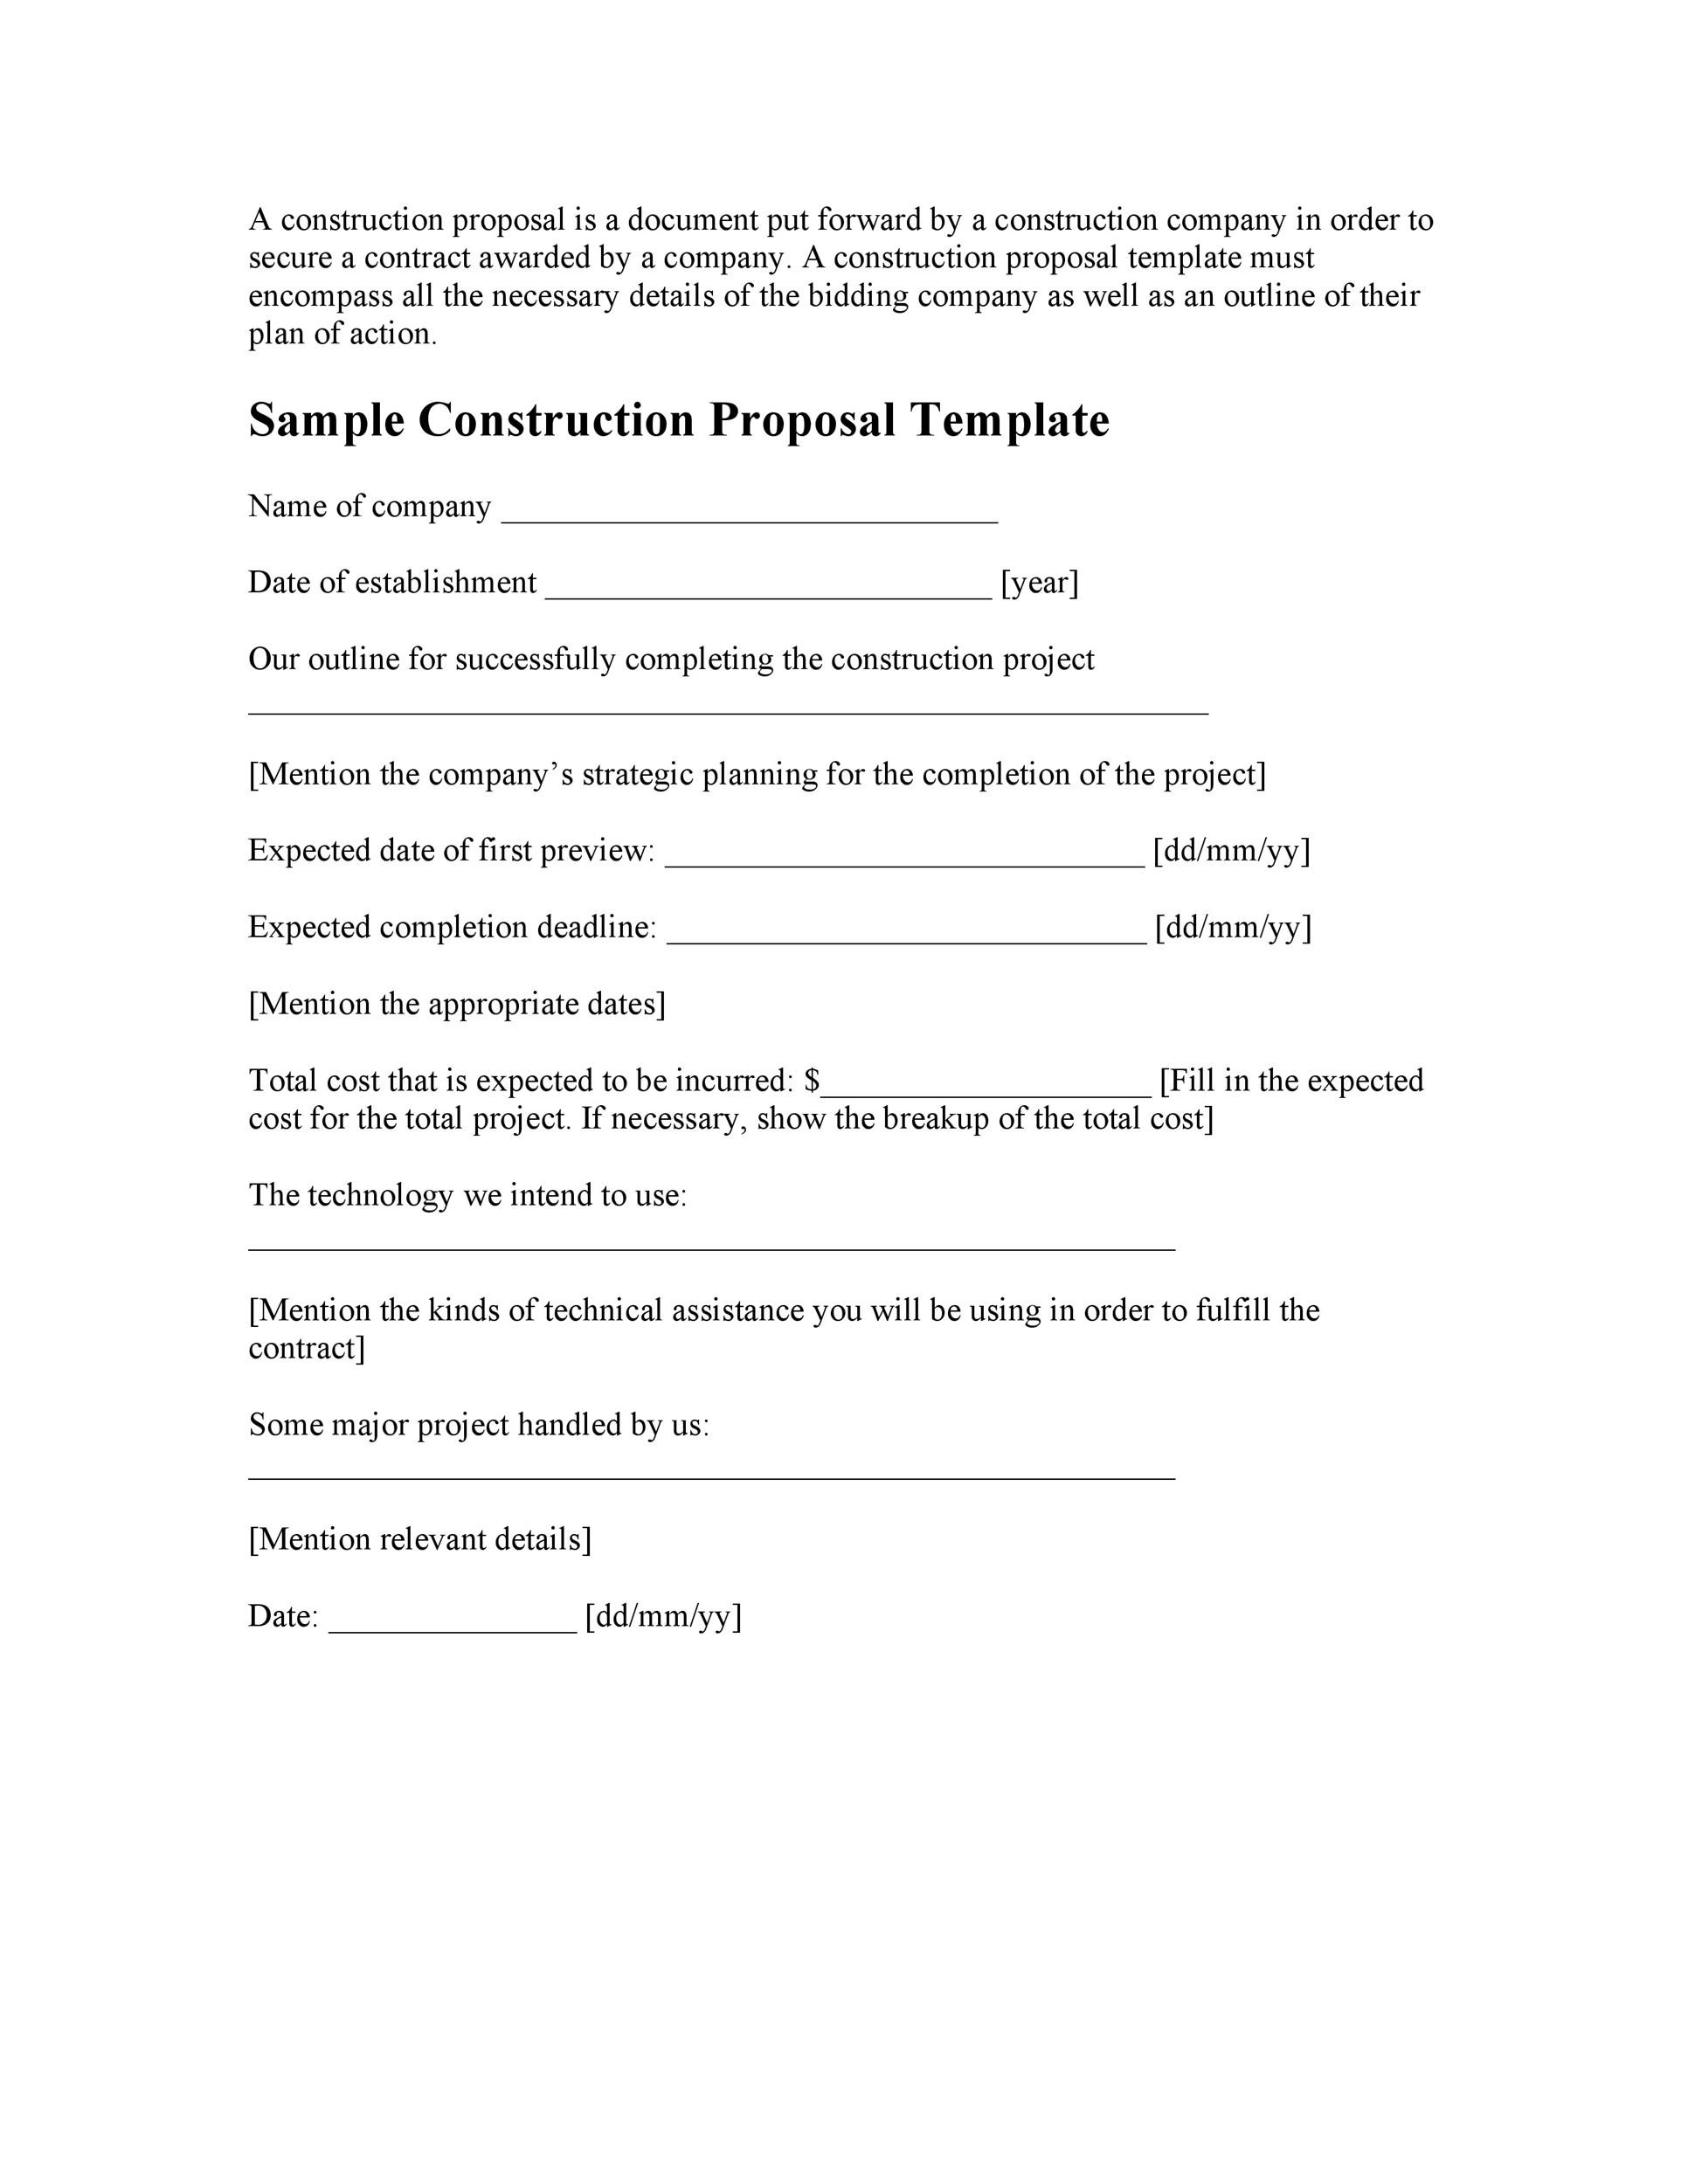 Proposal letter examples radioincogible proposal letter examples spiritdancerdesigns Gallery